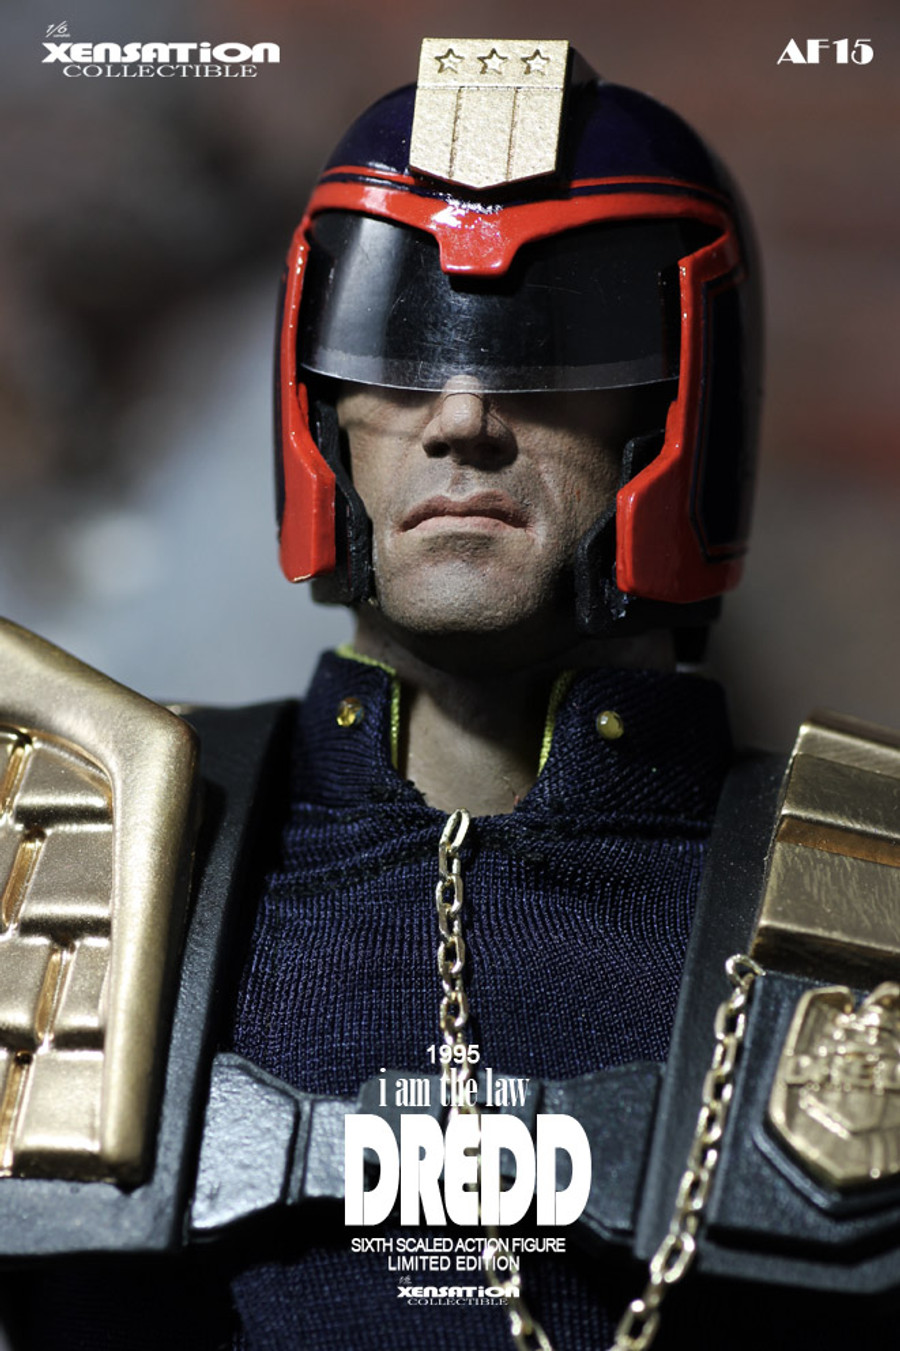 Xensation Collectible - The Dredd